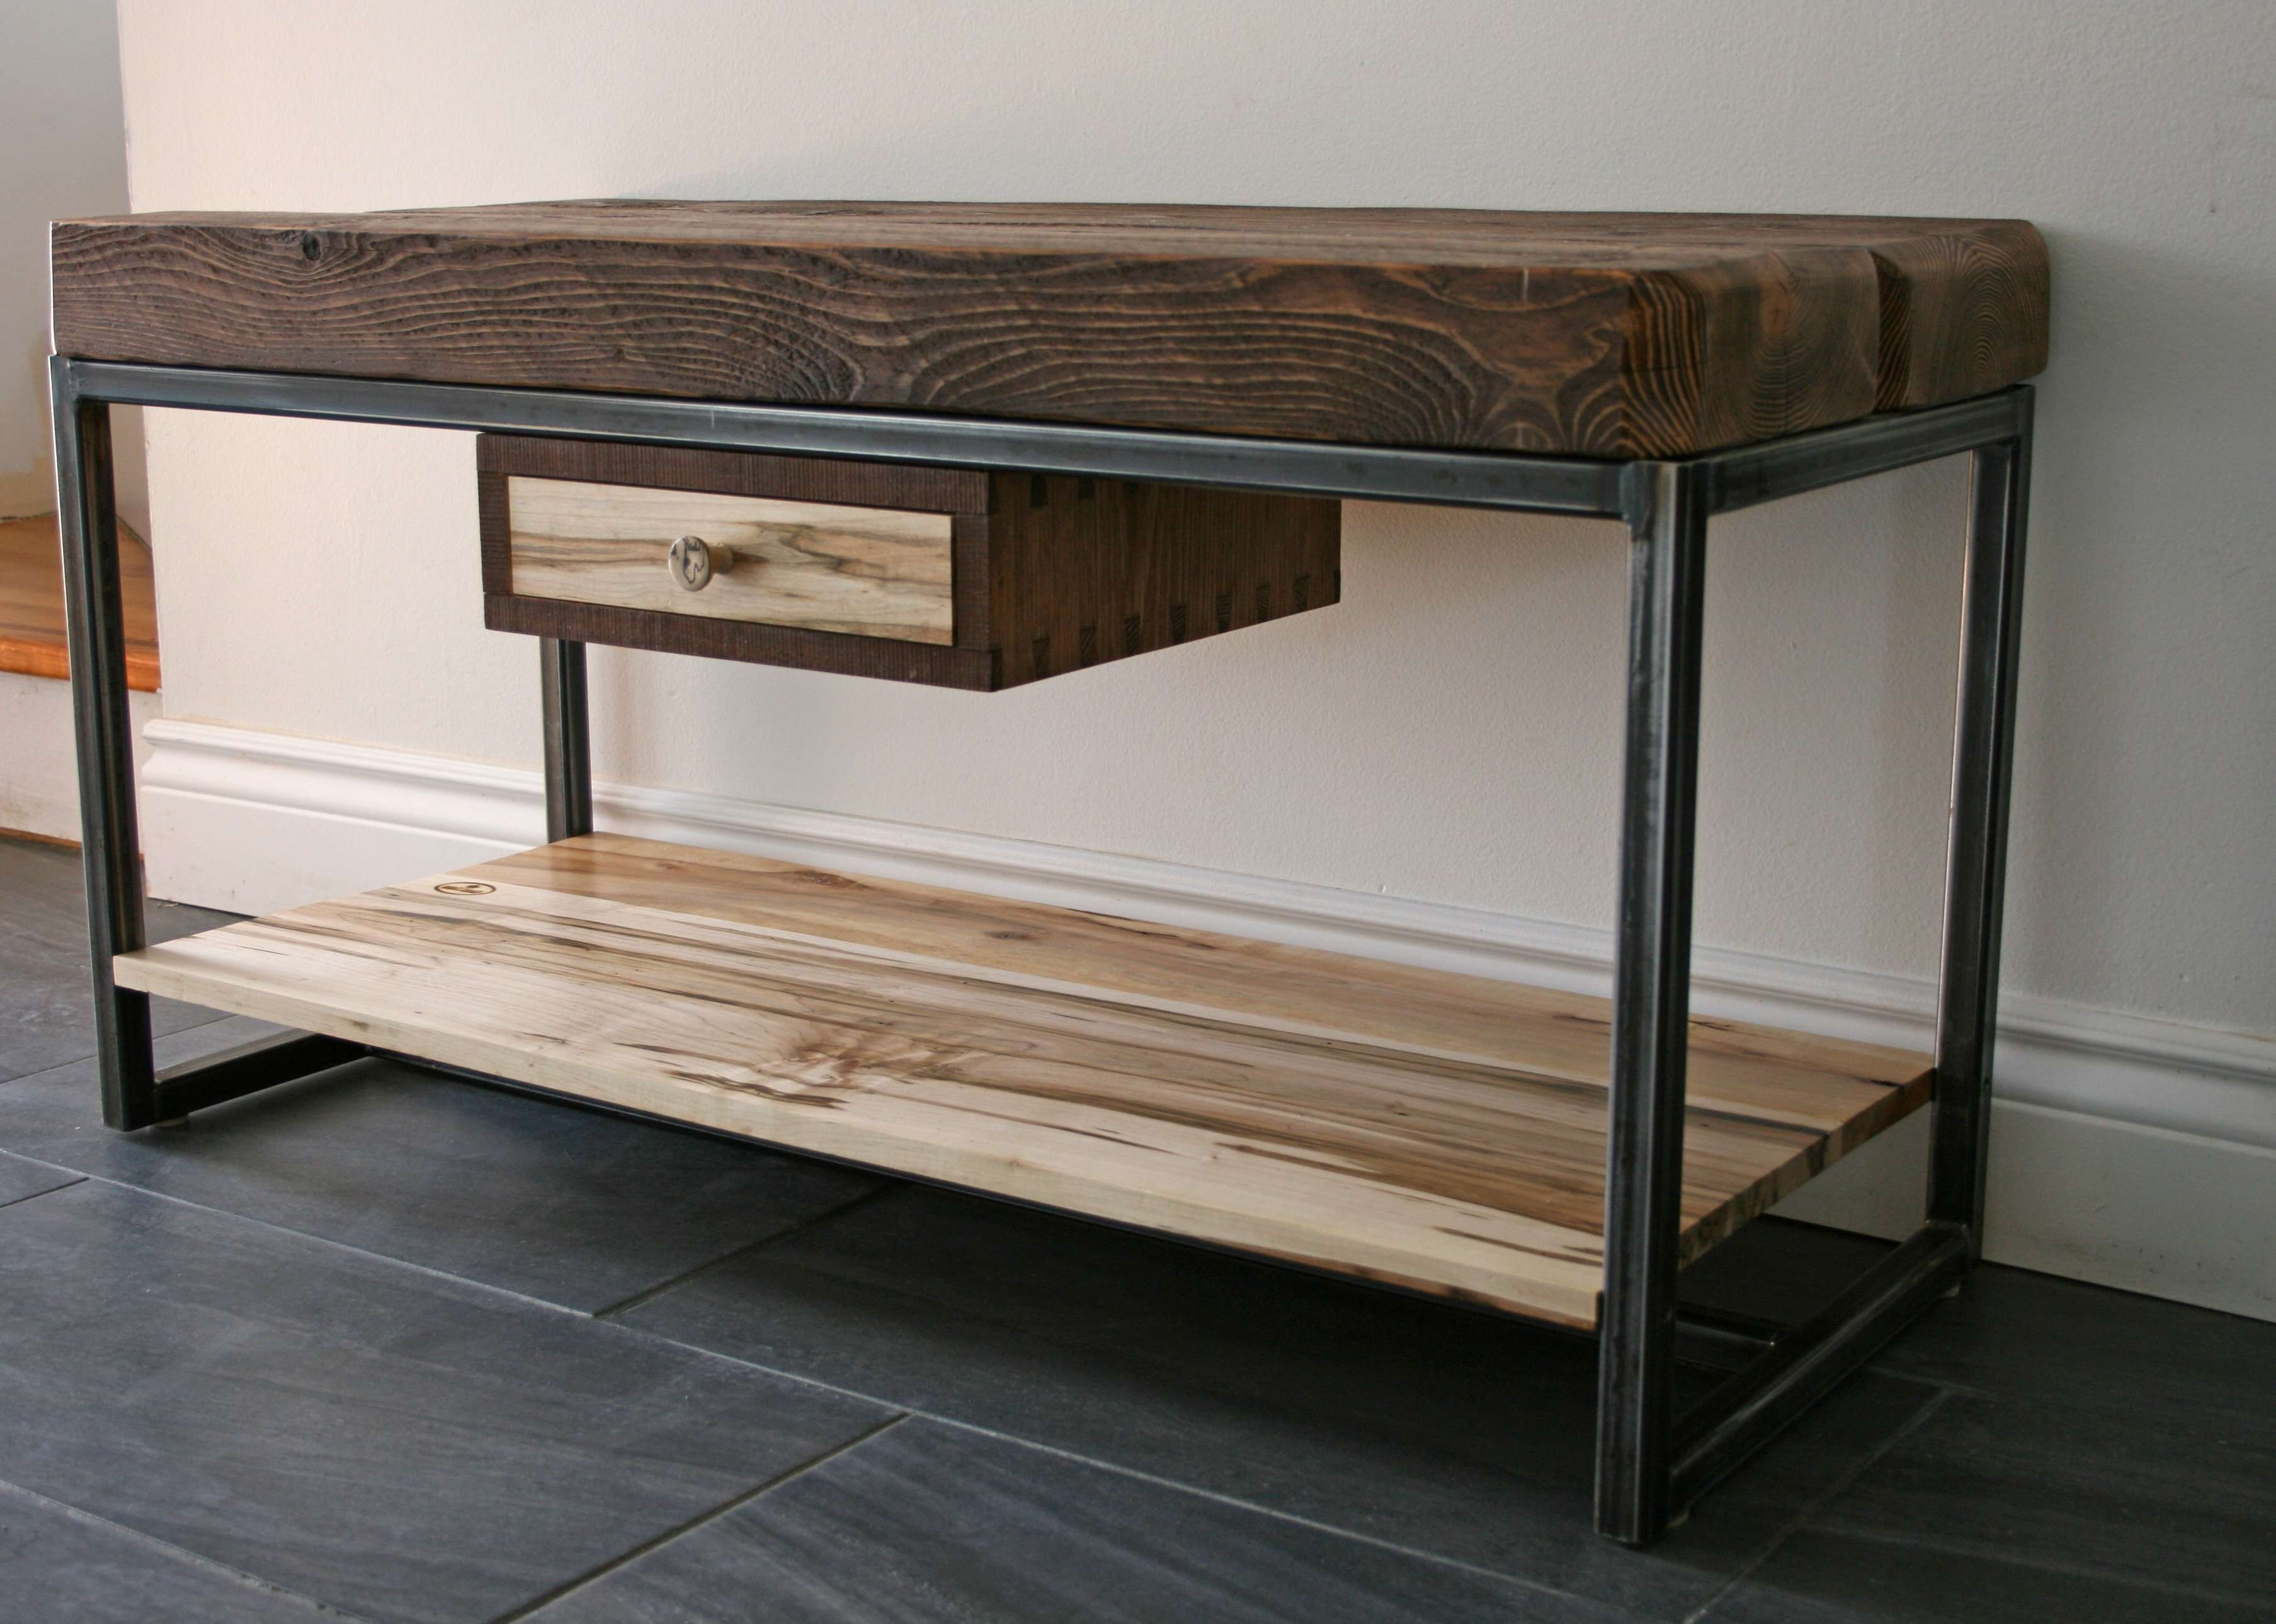 Hemlock And Wormy Maple Tv Stand | Second Nature Wood Design In Maple Tv Stands (View 3 of 15)